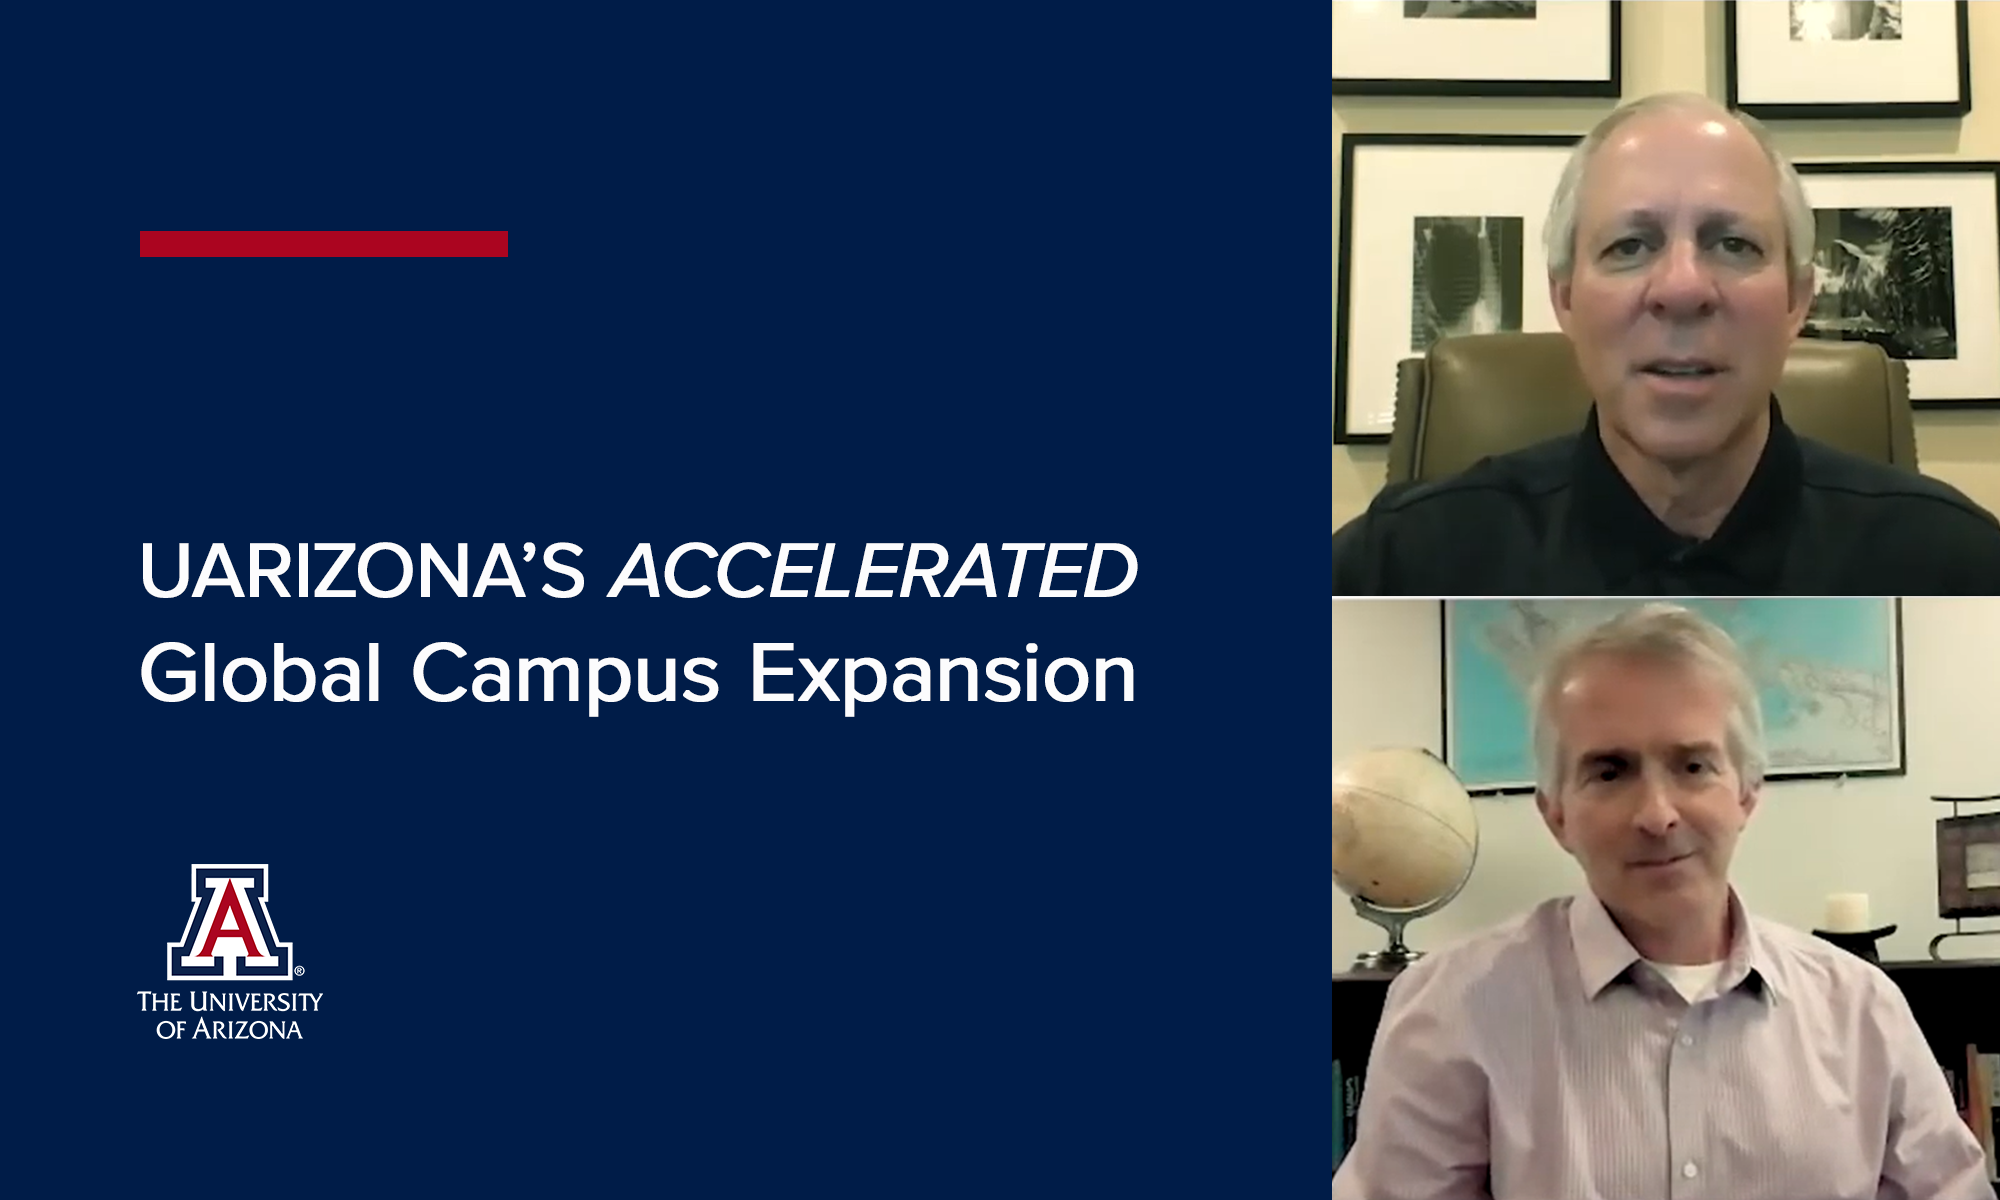 UArizona's Accelerated Global Campus Expansion President Robbins conversation with Brent White, Arizona Global Campus